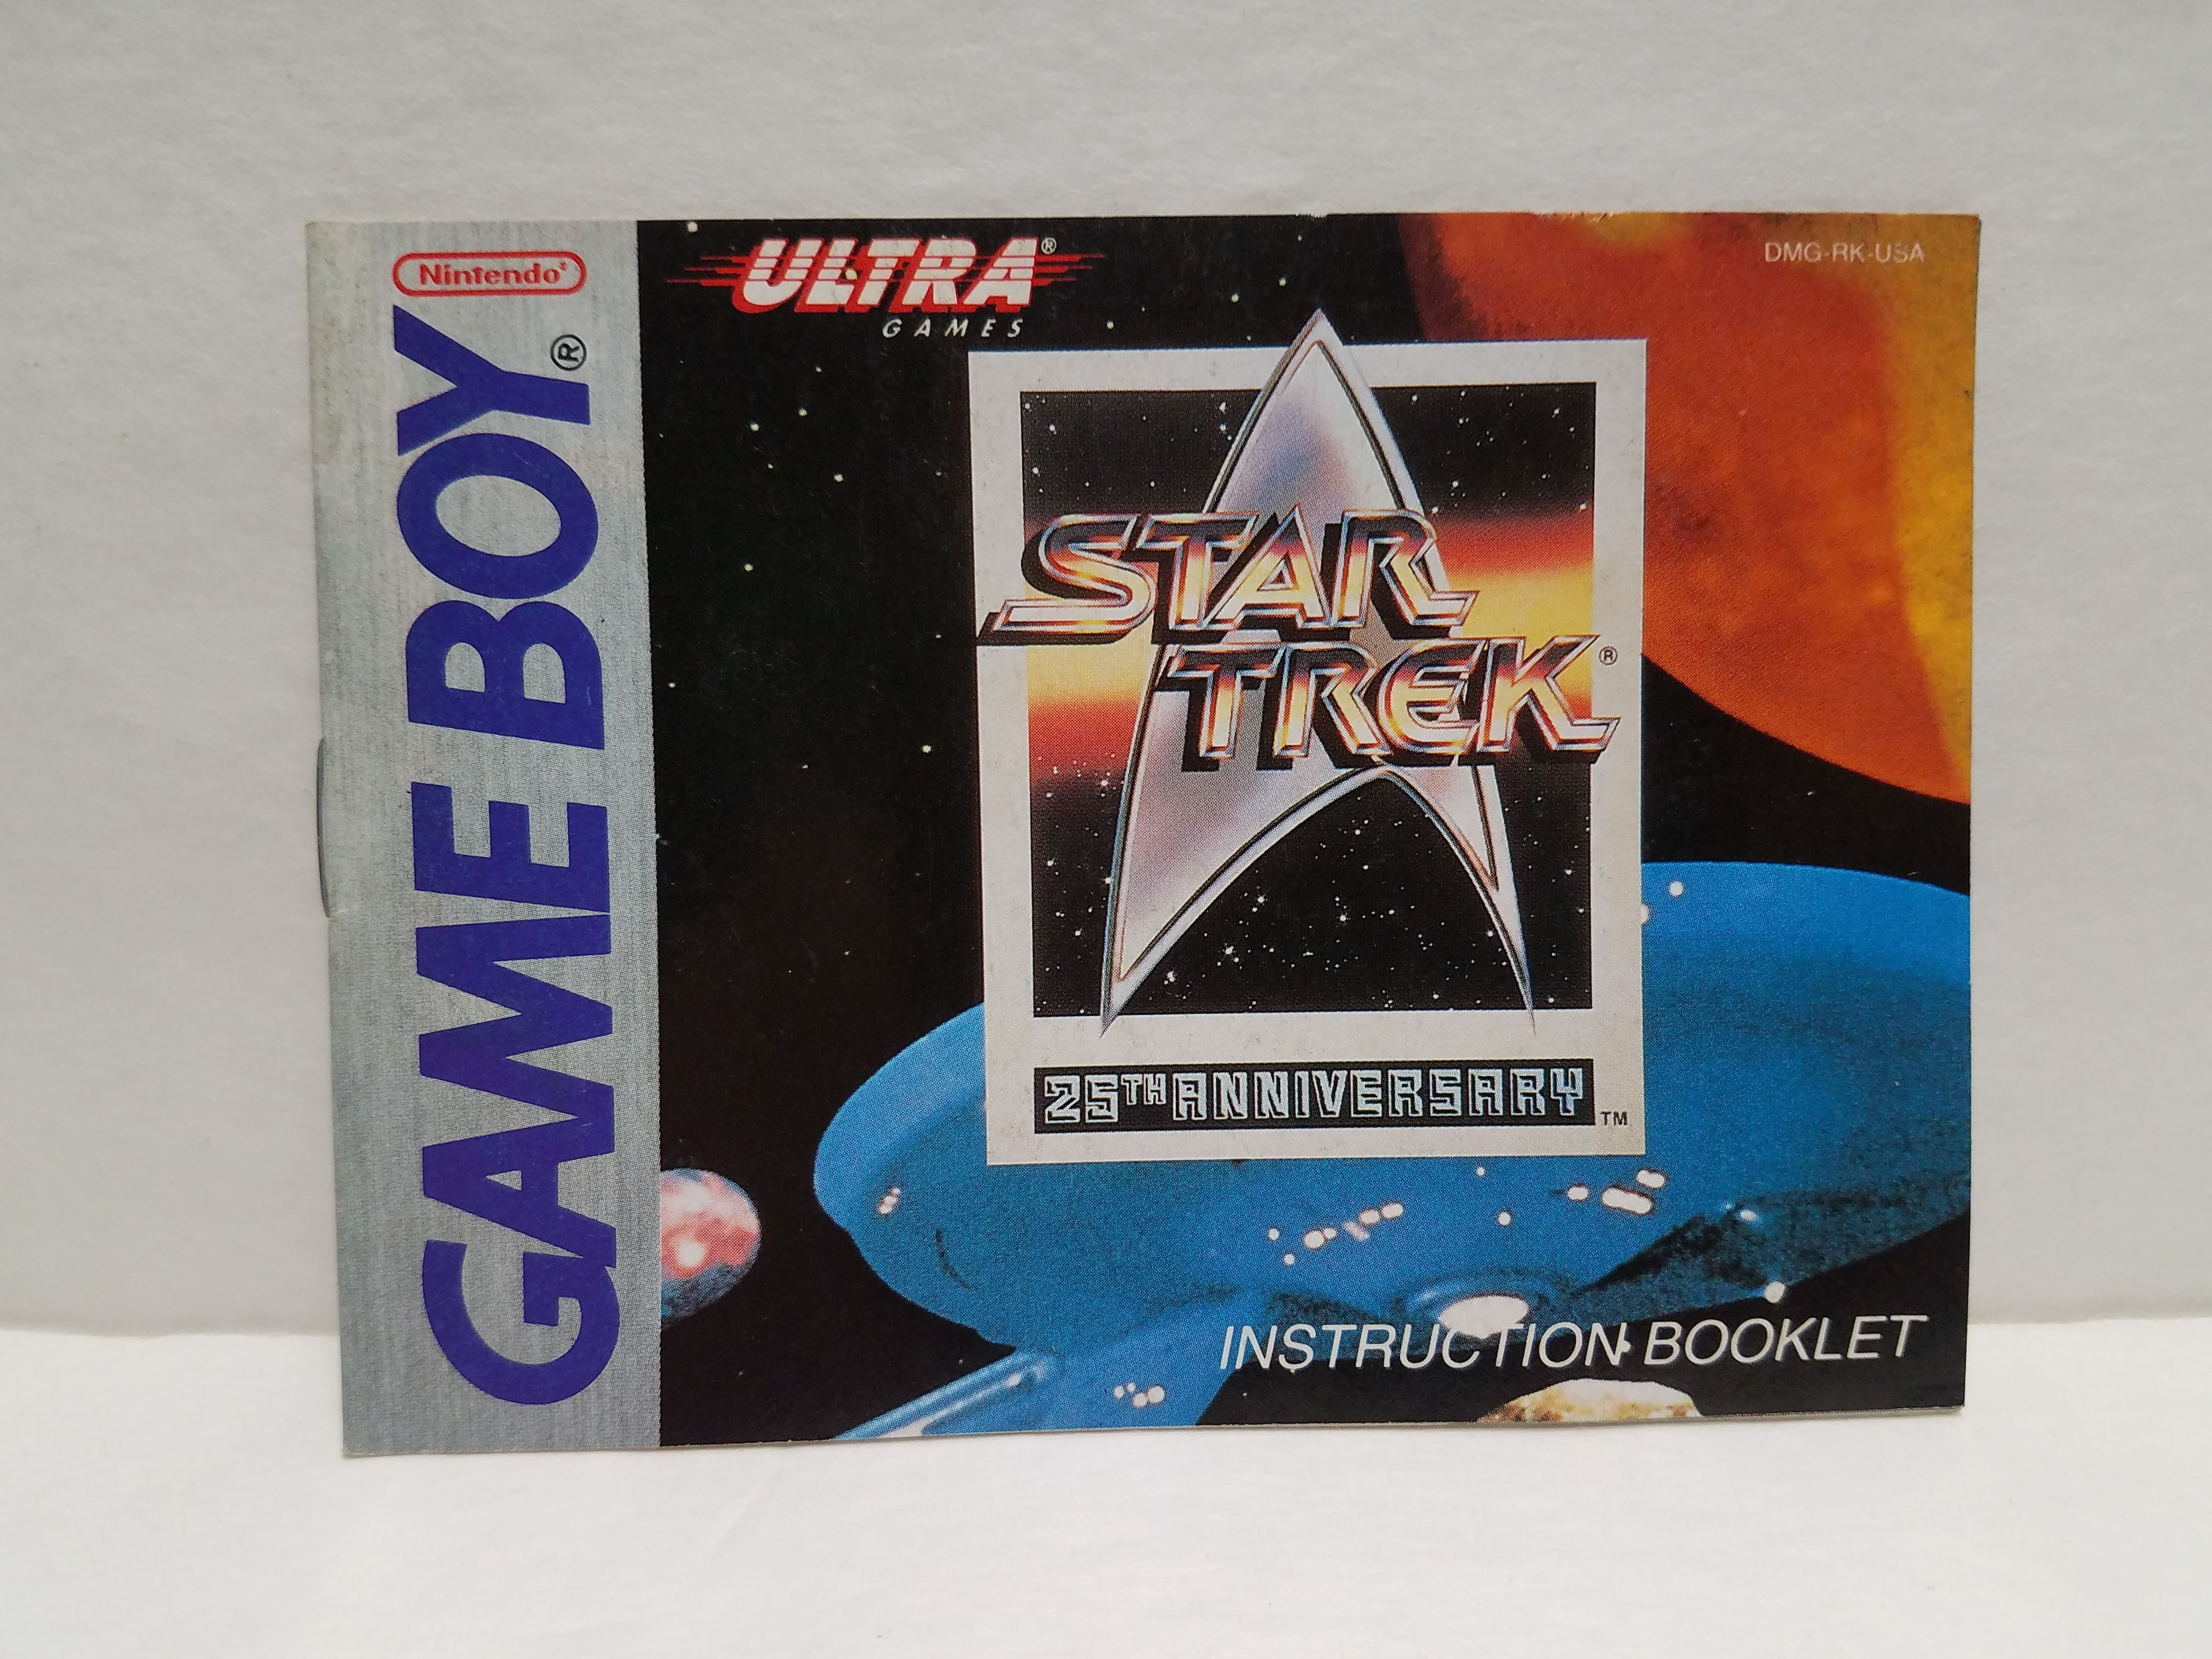 star trek 25th anniversary instruction booklet gameboy manual rh pinterest com Star Trek 2012 July-23 star trek 25th anniversary game manual